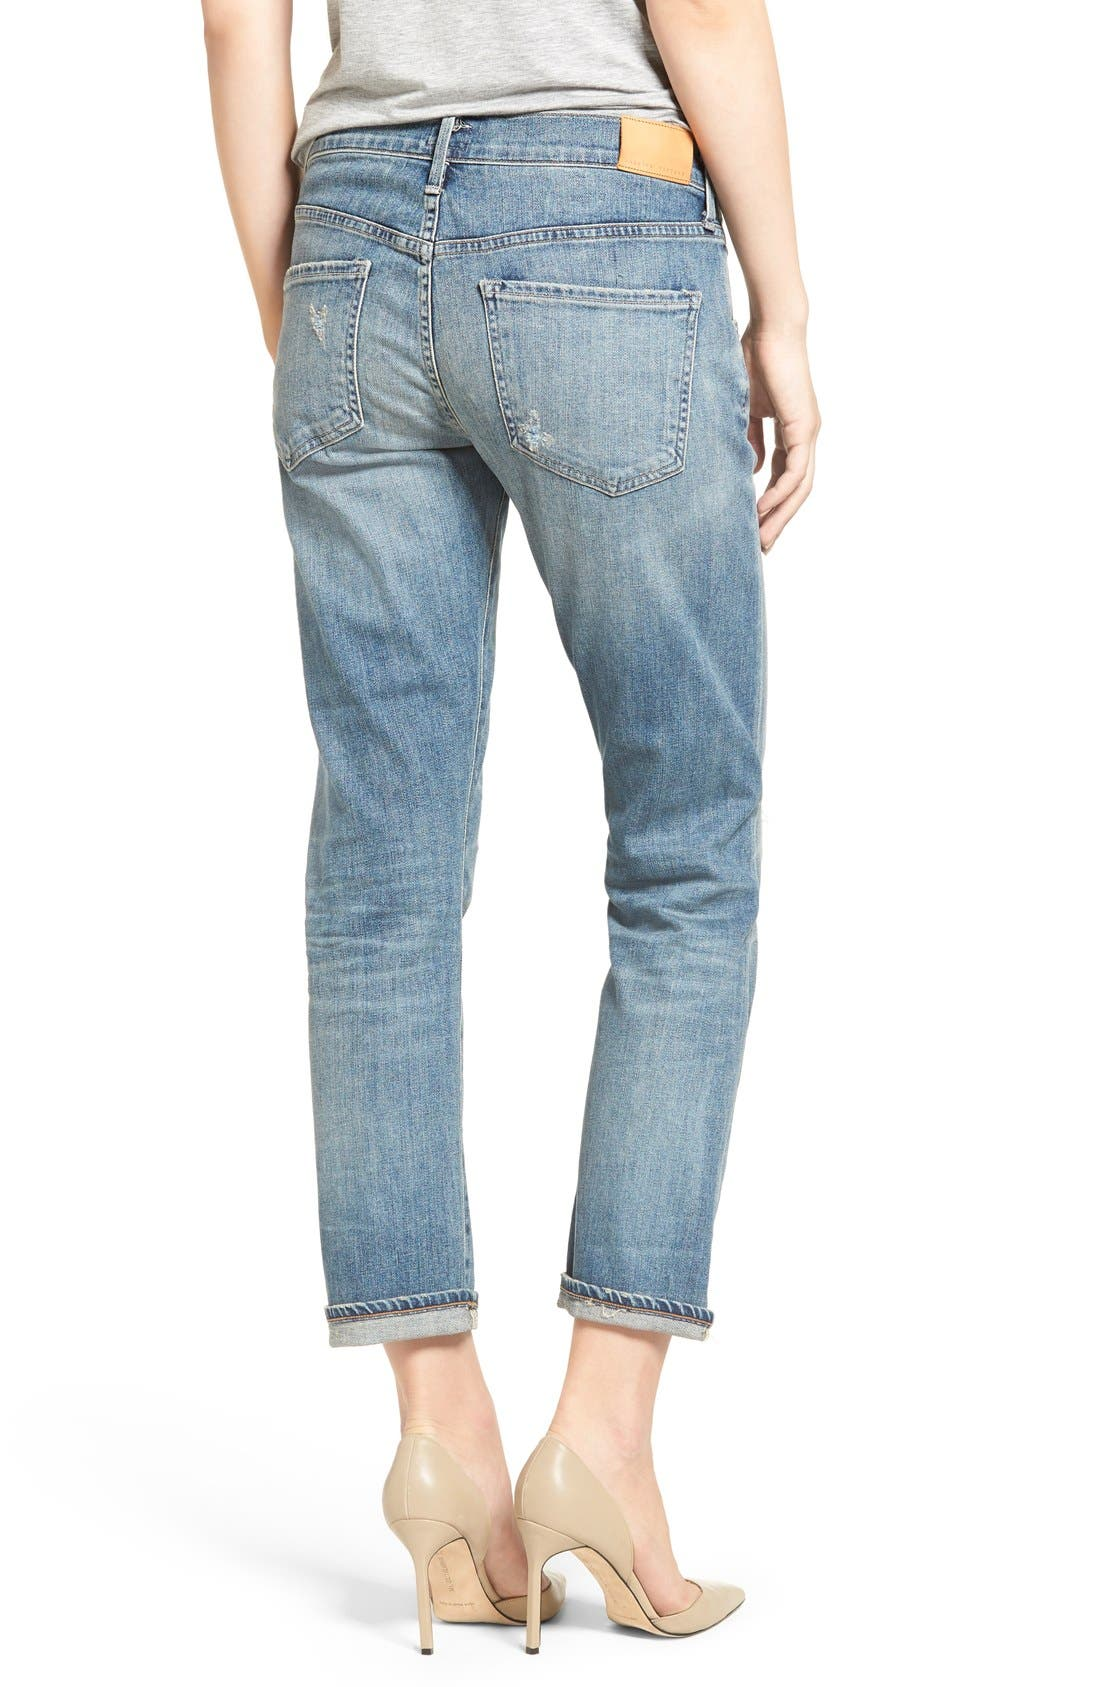 CITIZENS OF HUMANITY,                             'Emerson' Ripped Slim Boyfriend Jeans,                             Alternate thumbnail 2, color,                             469